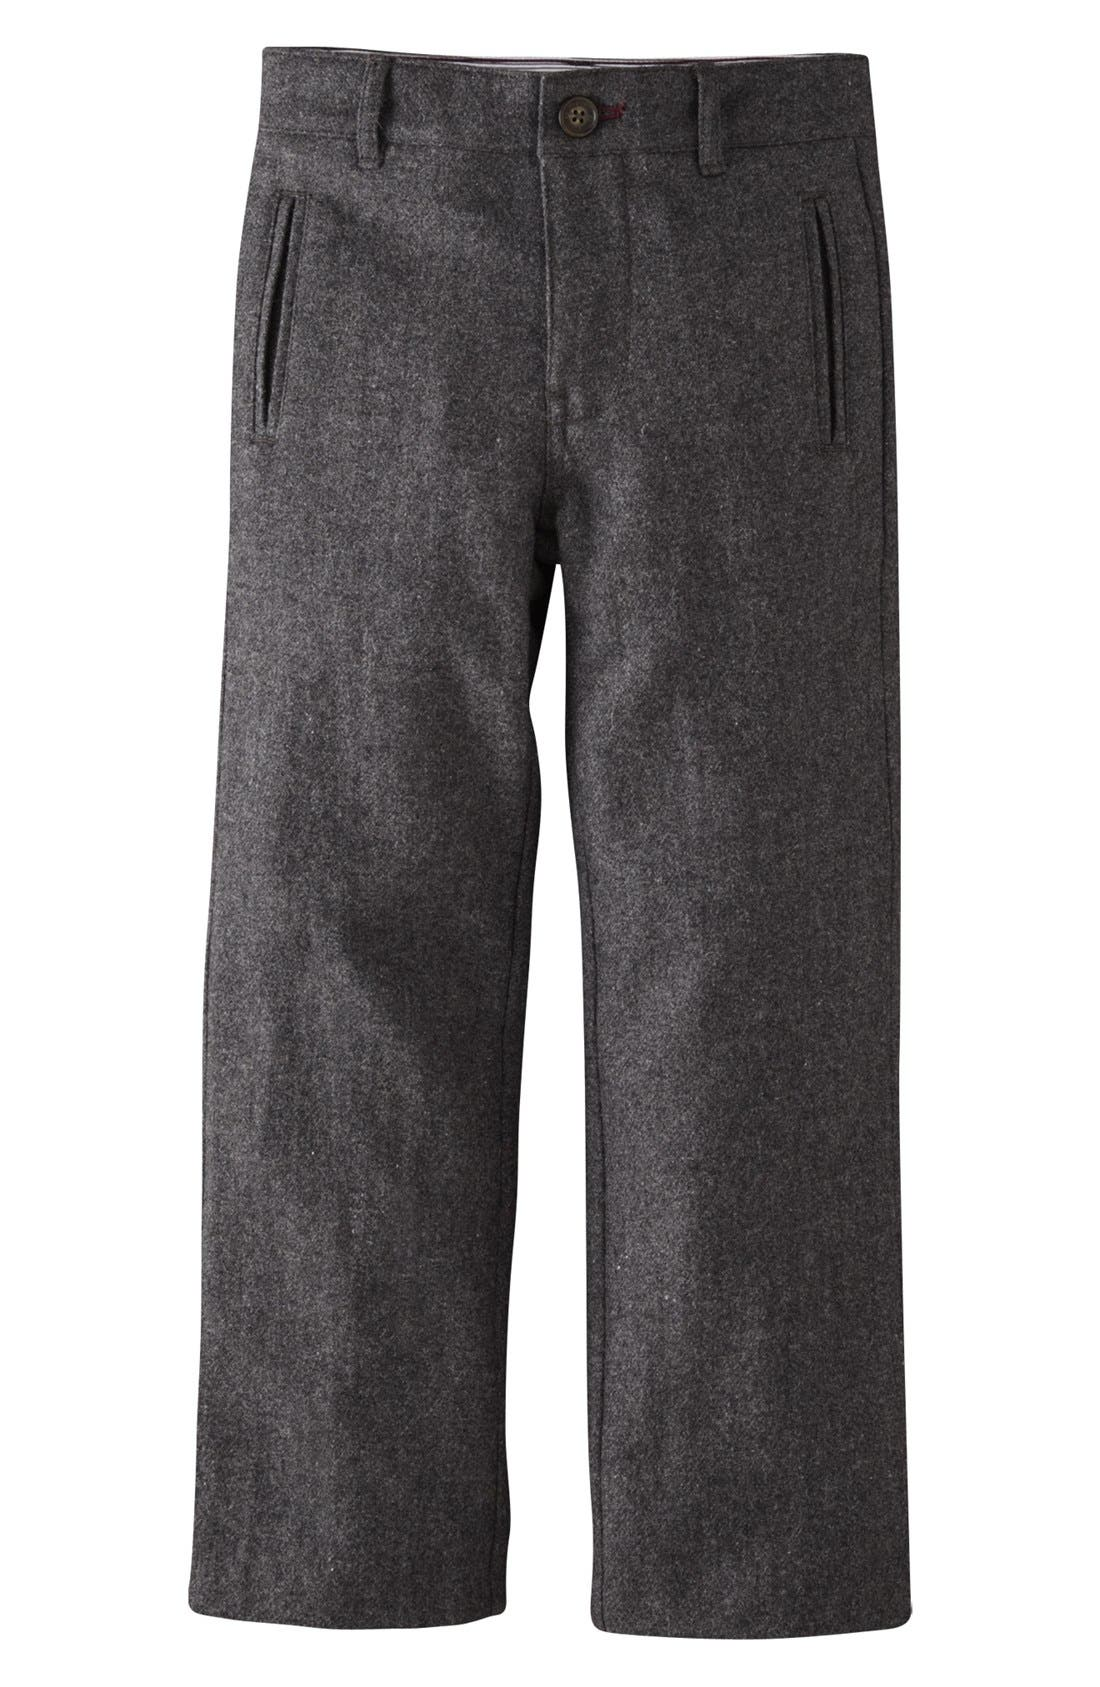 Main Image - Mini Boden Wool Trousers (Toddler Boys)